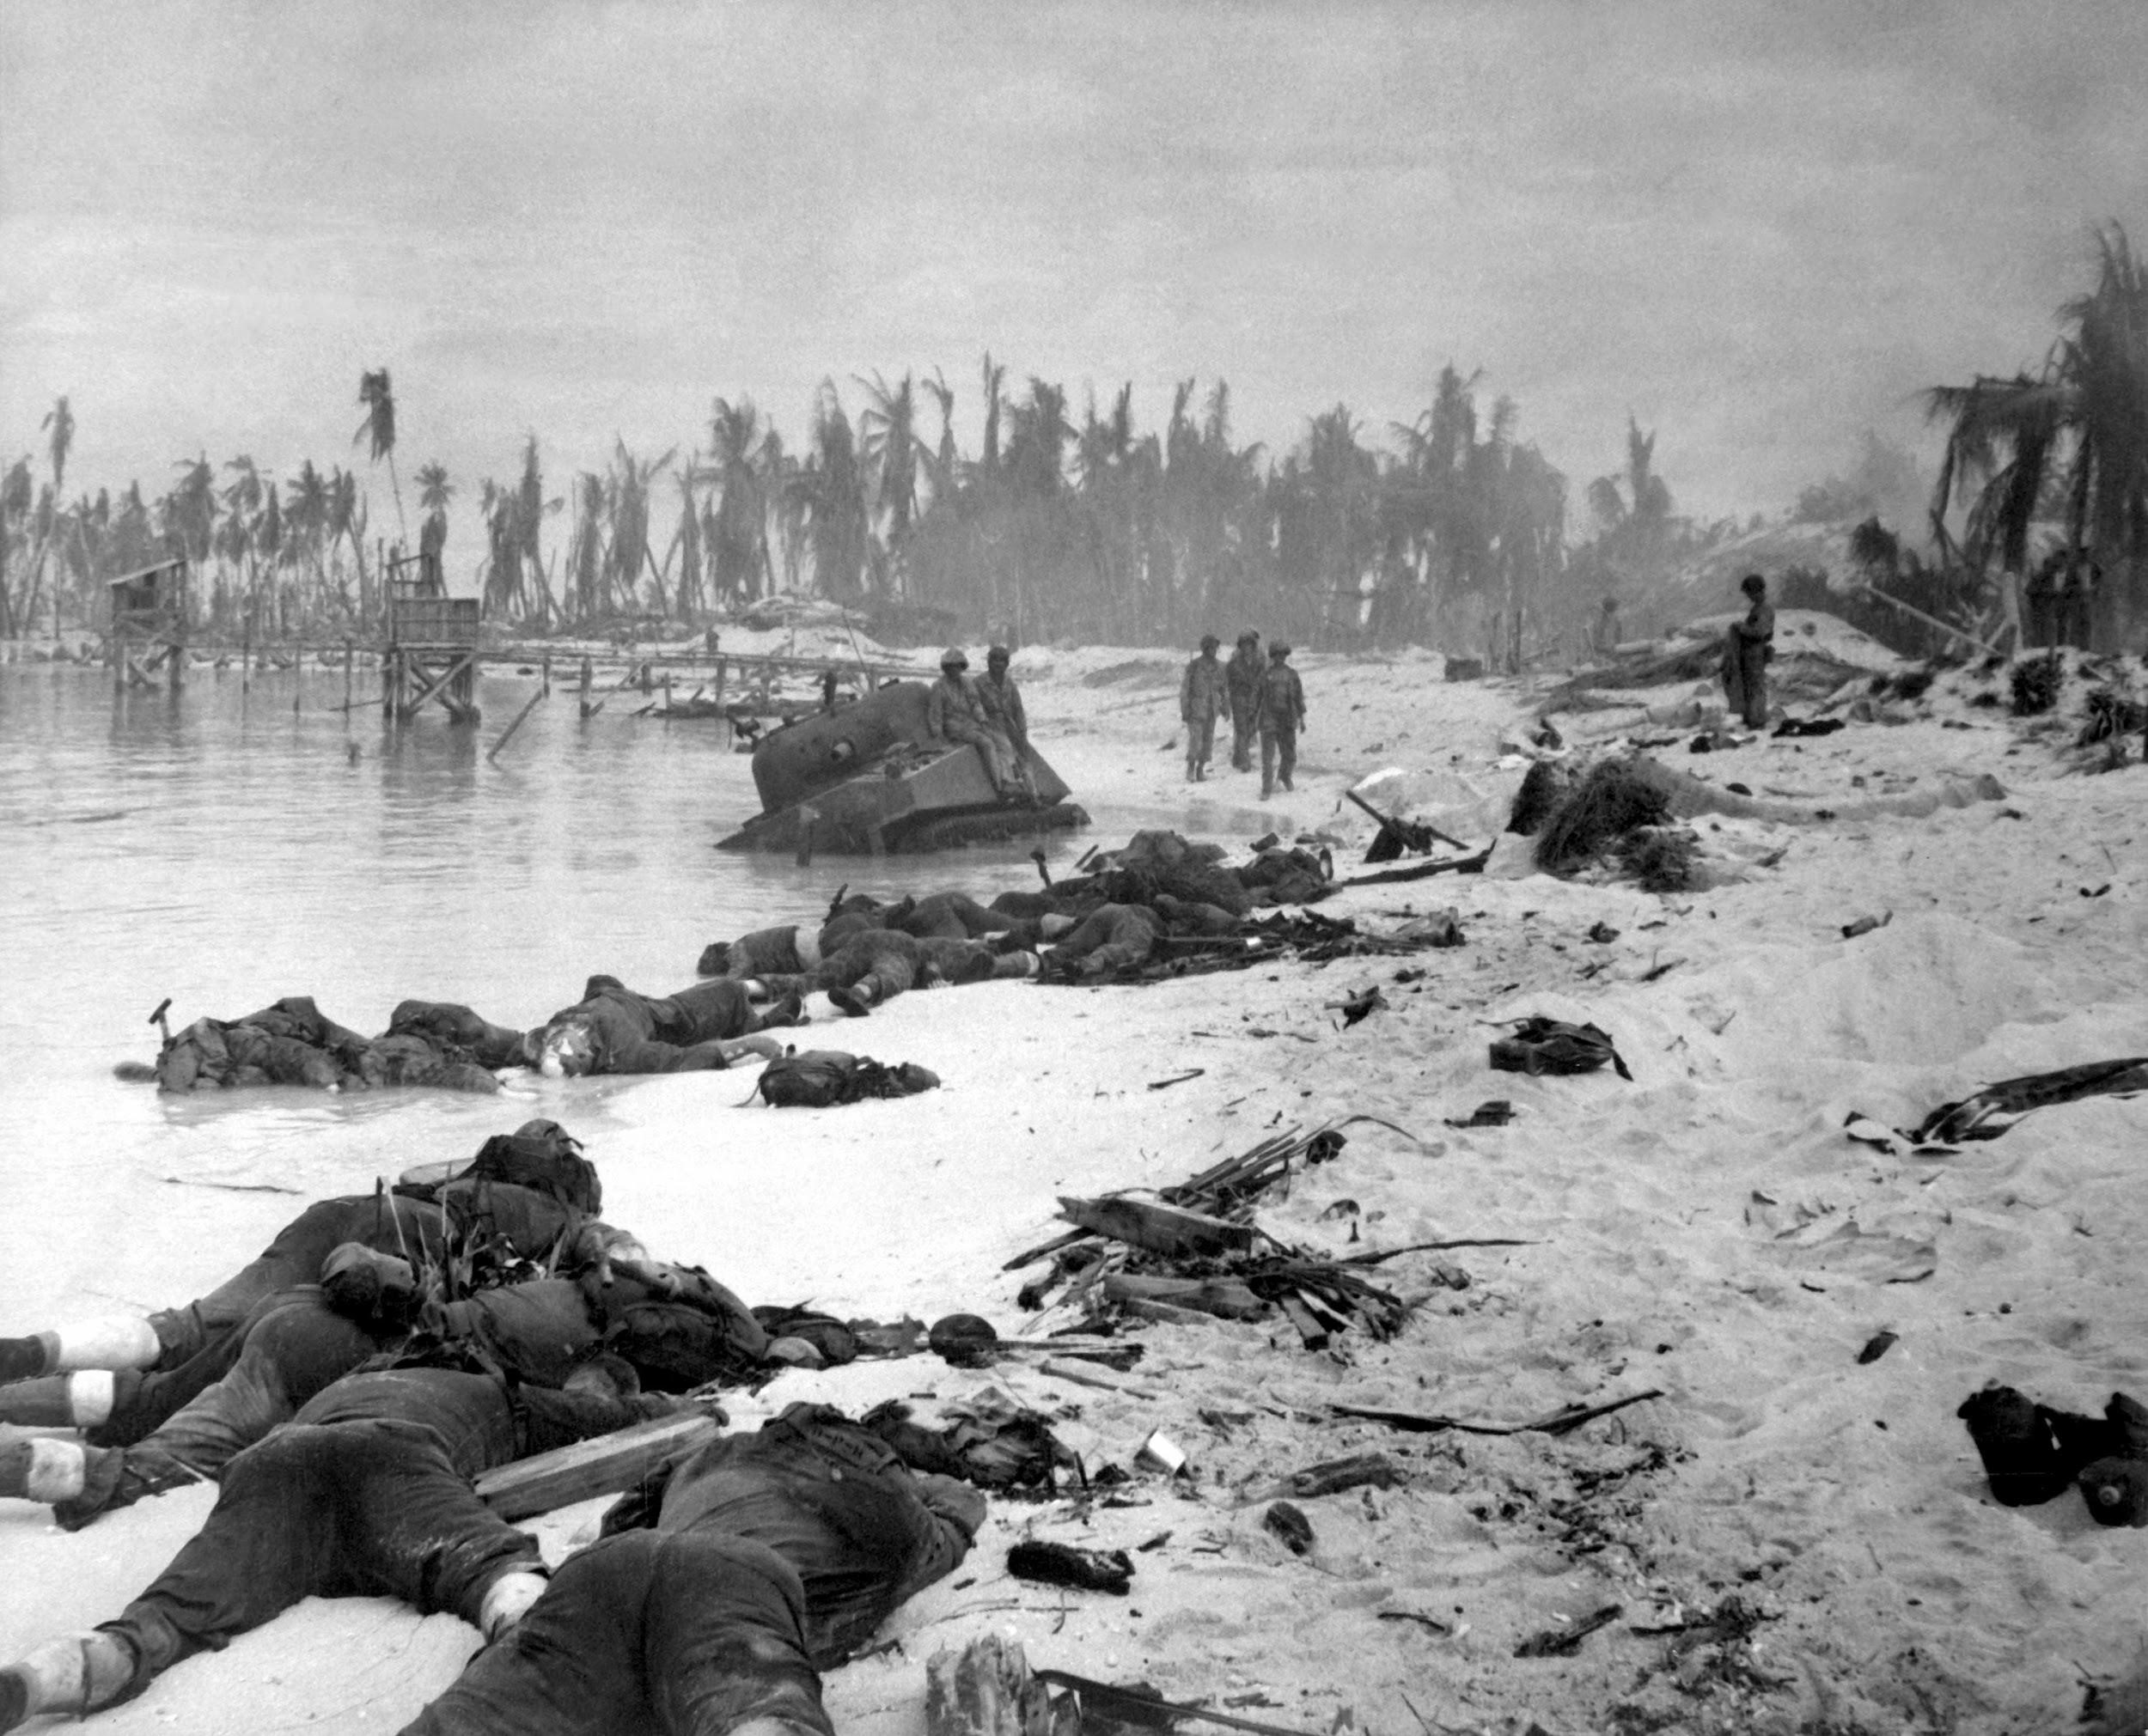 A photograph of dead American soldiers following an assault on Tarawa Atoll in the central Pacific (November, 1943). Over 900 American marines died during the battle, while the Japanese lost over 4,000 men.